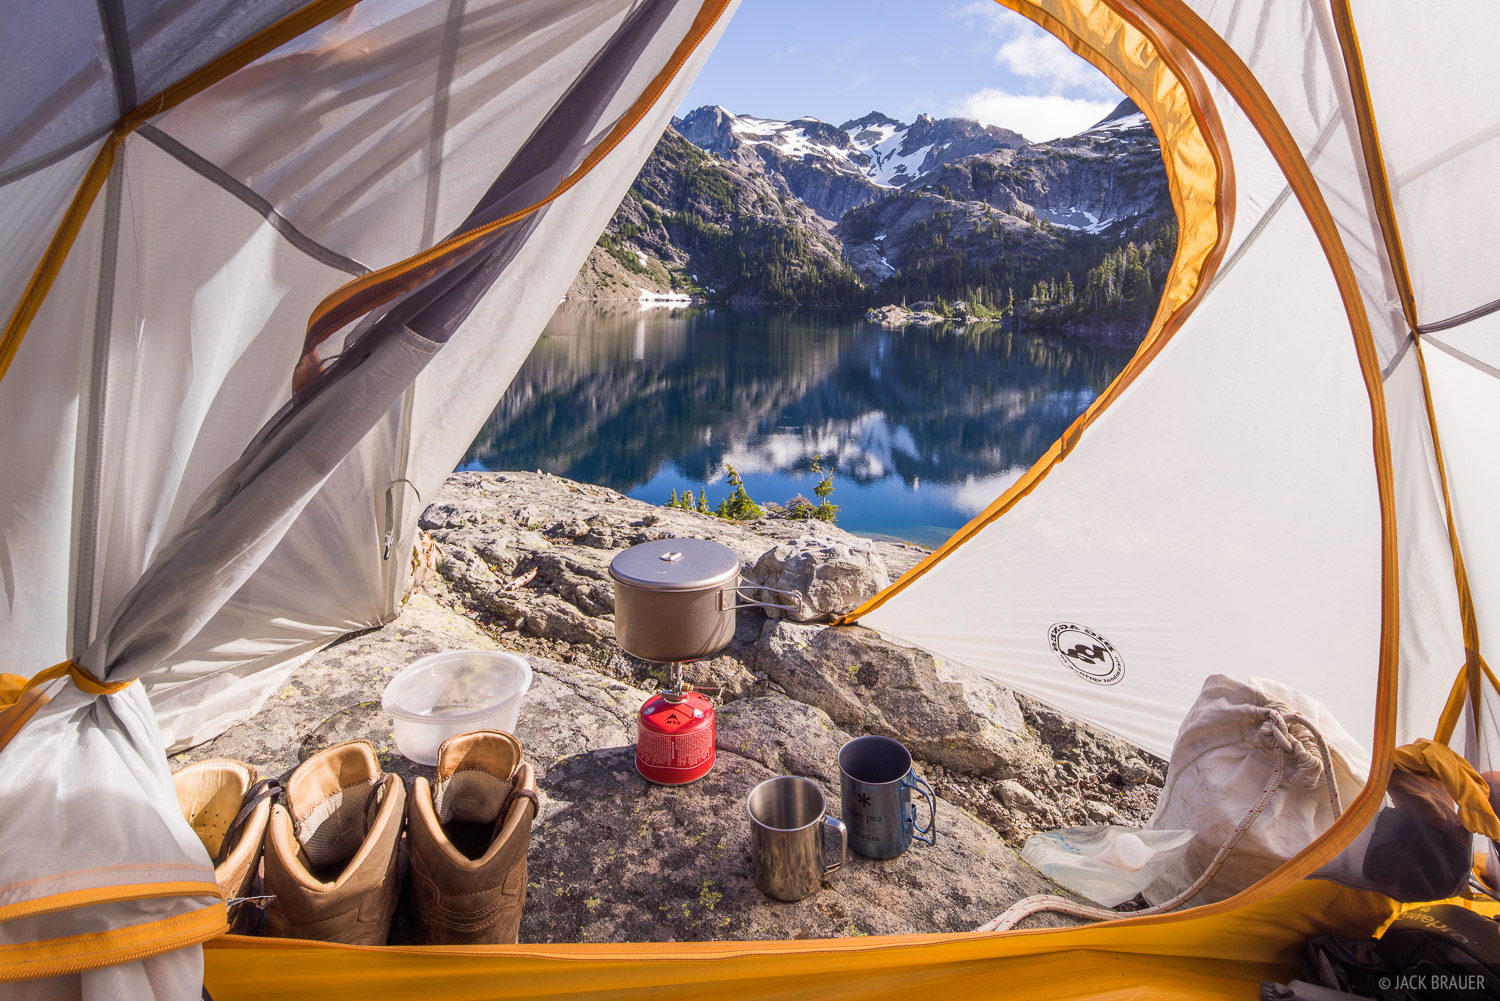 Alpine Lakes Wilderness, Mount Daniel, Spade Lake, Washington, tent, Cascades